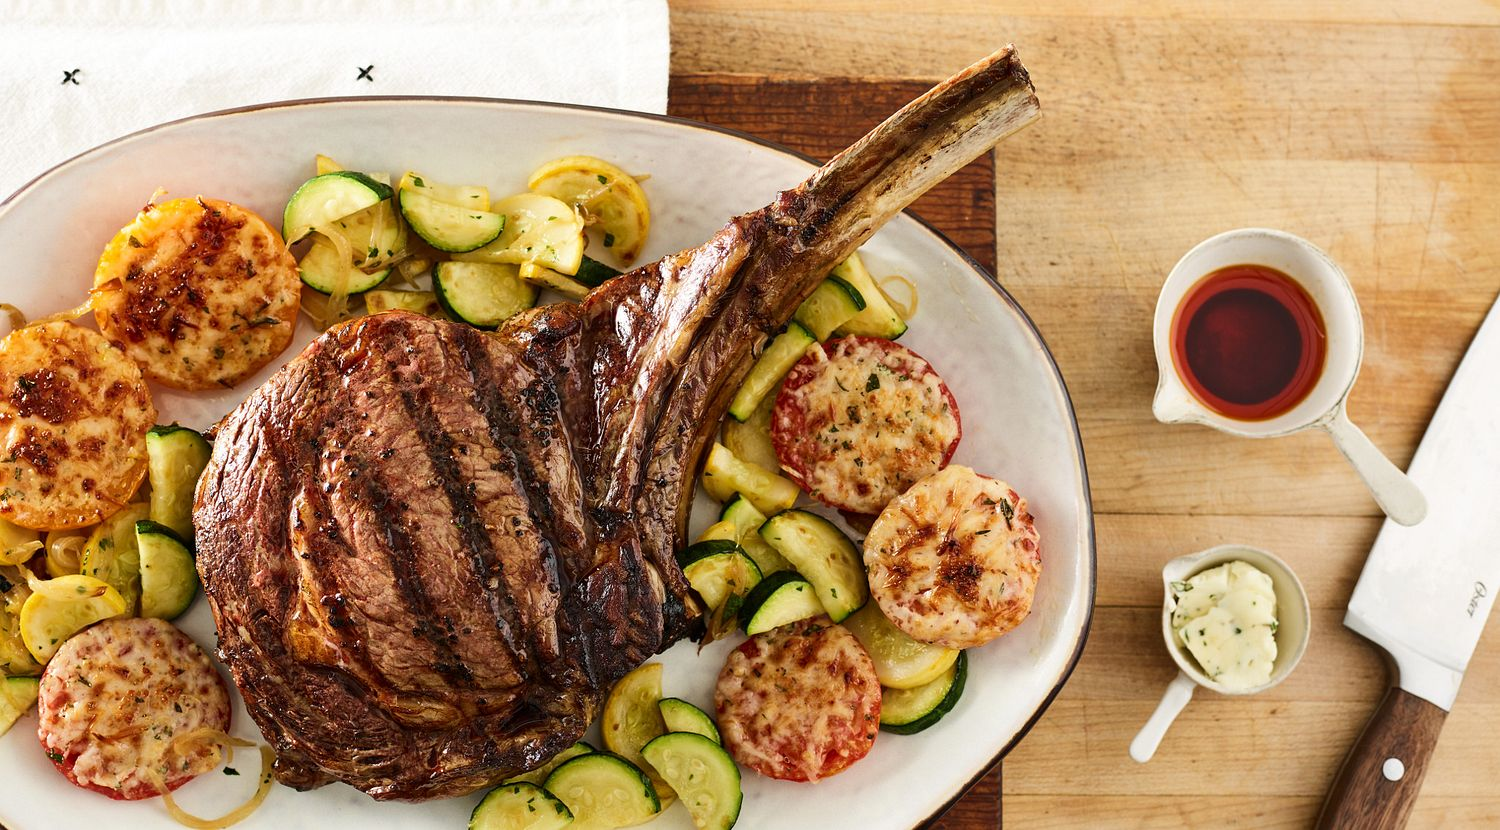 Grilled Beef Ribeye Steak with Parmesan Tomatoes and Squash